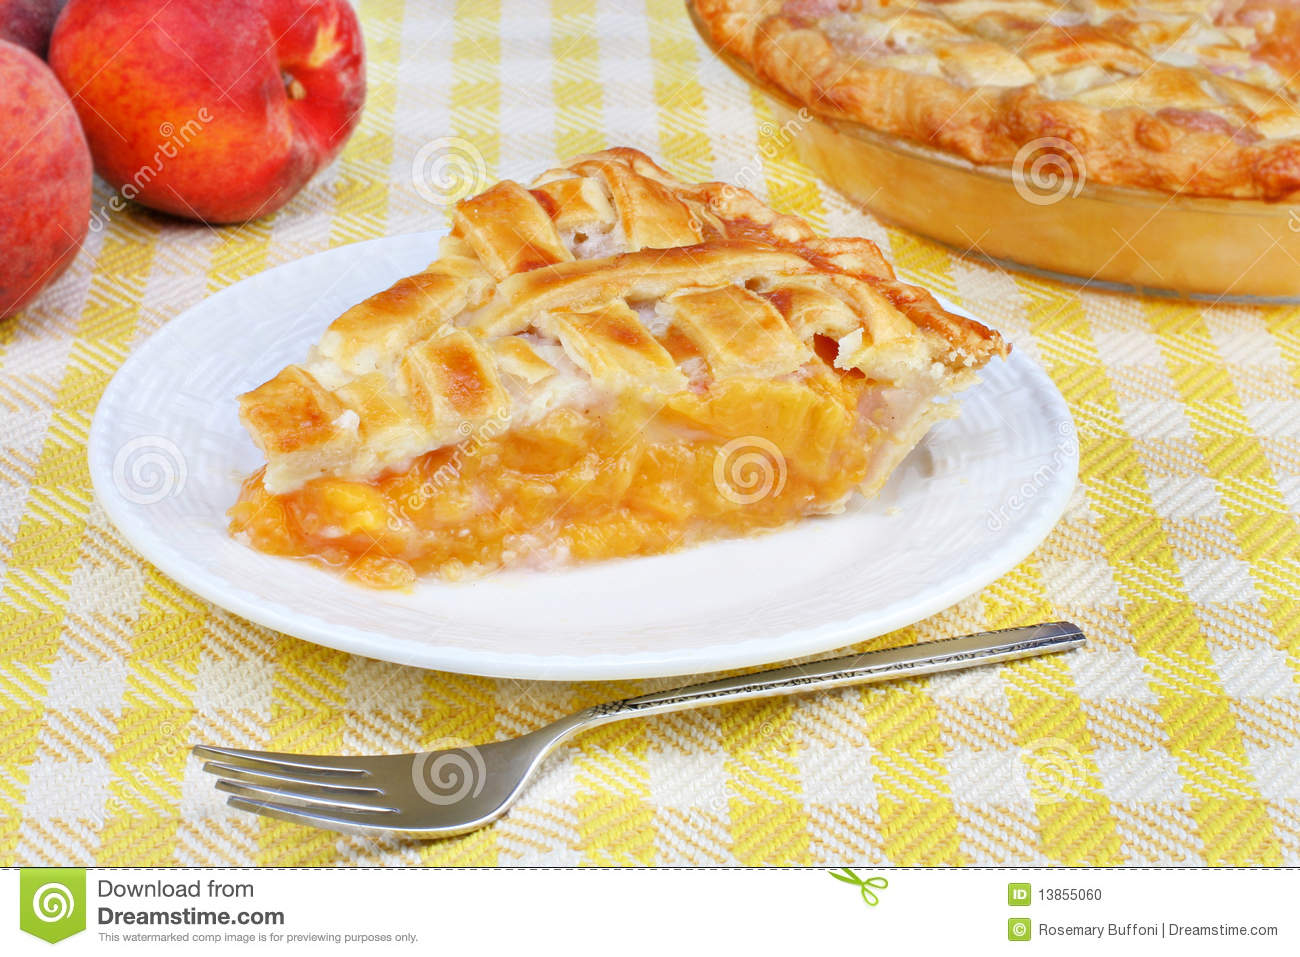 One Slice Of Fresh Peach Pie With A Lattice Top